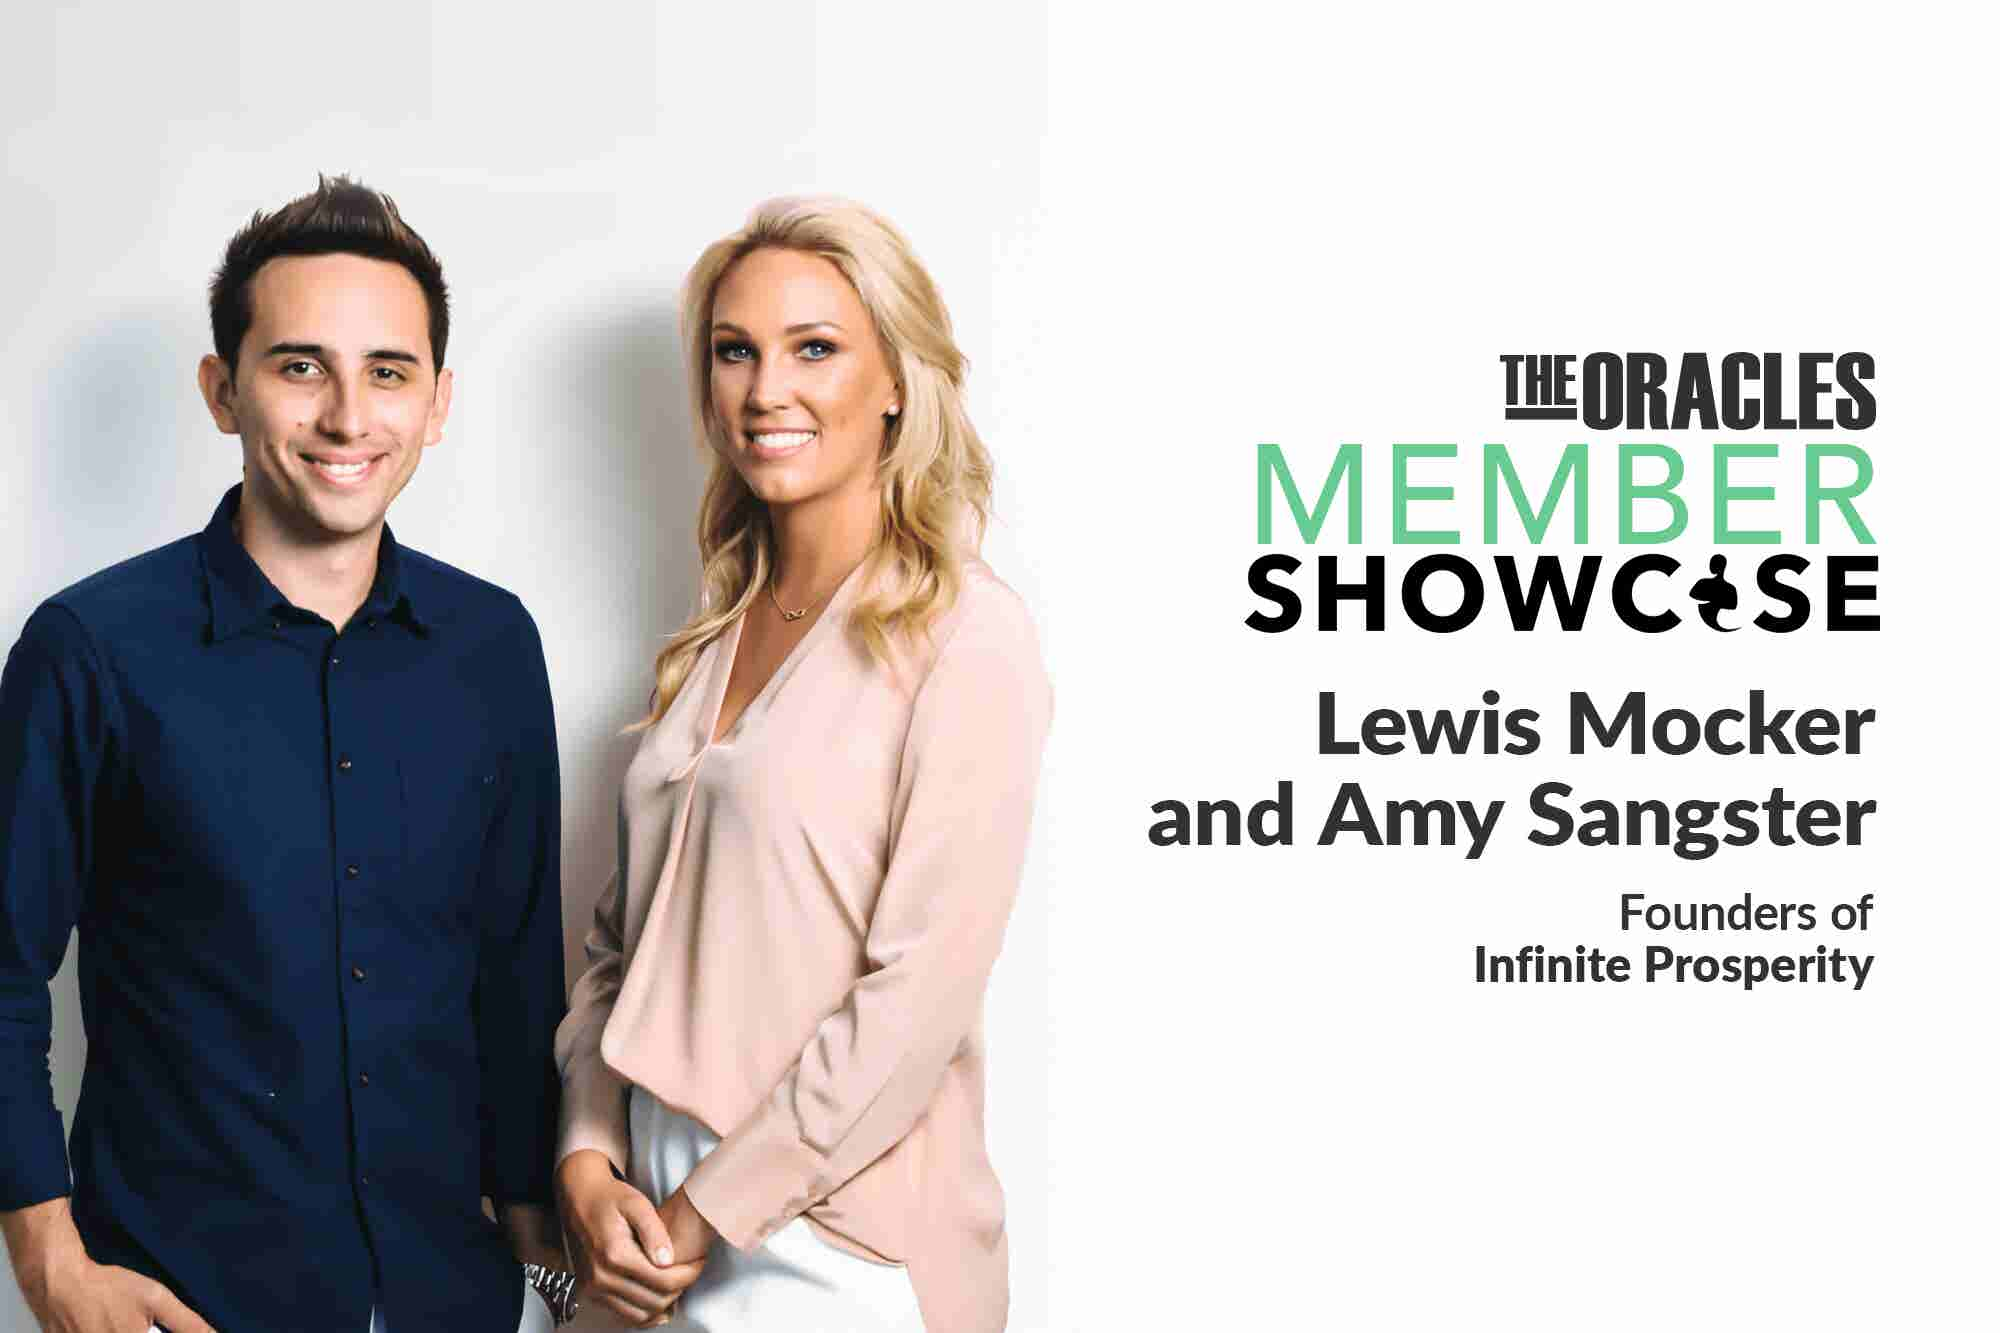 How Lewis Mocker and Amy Sangster Went from High School Friends Interested in Finance to Teaching Thousands to Build Wealth